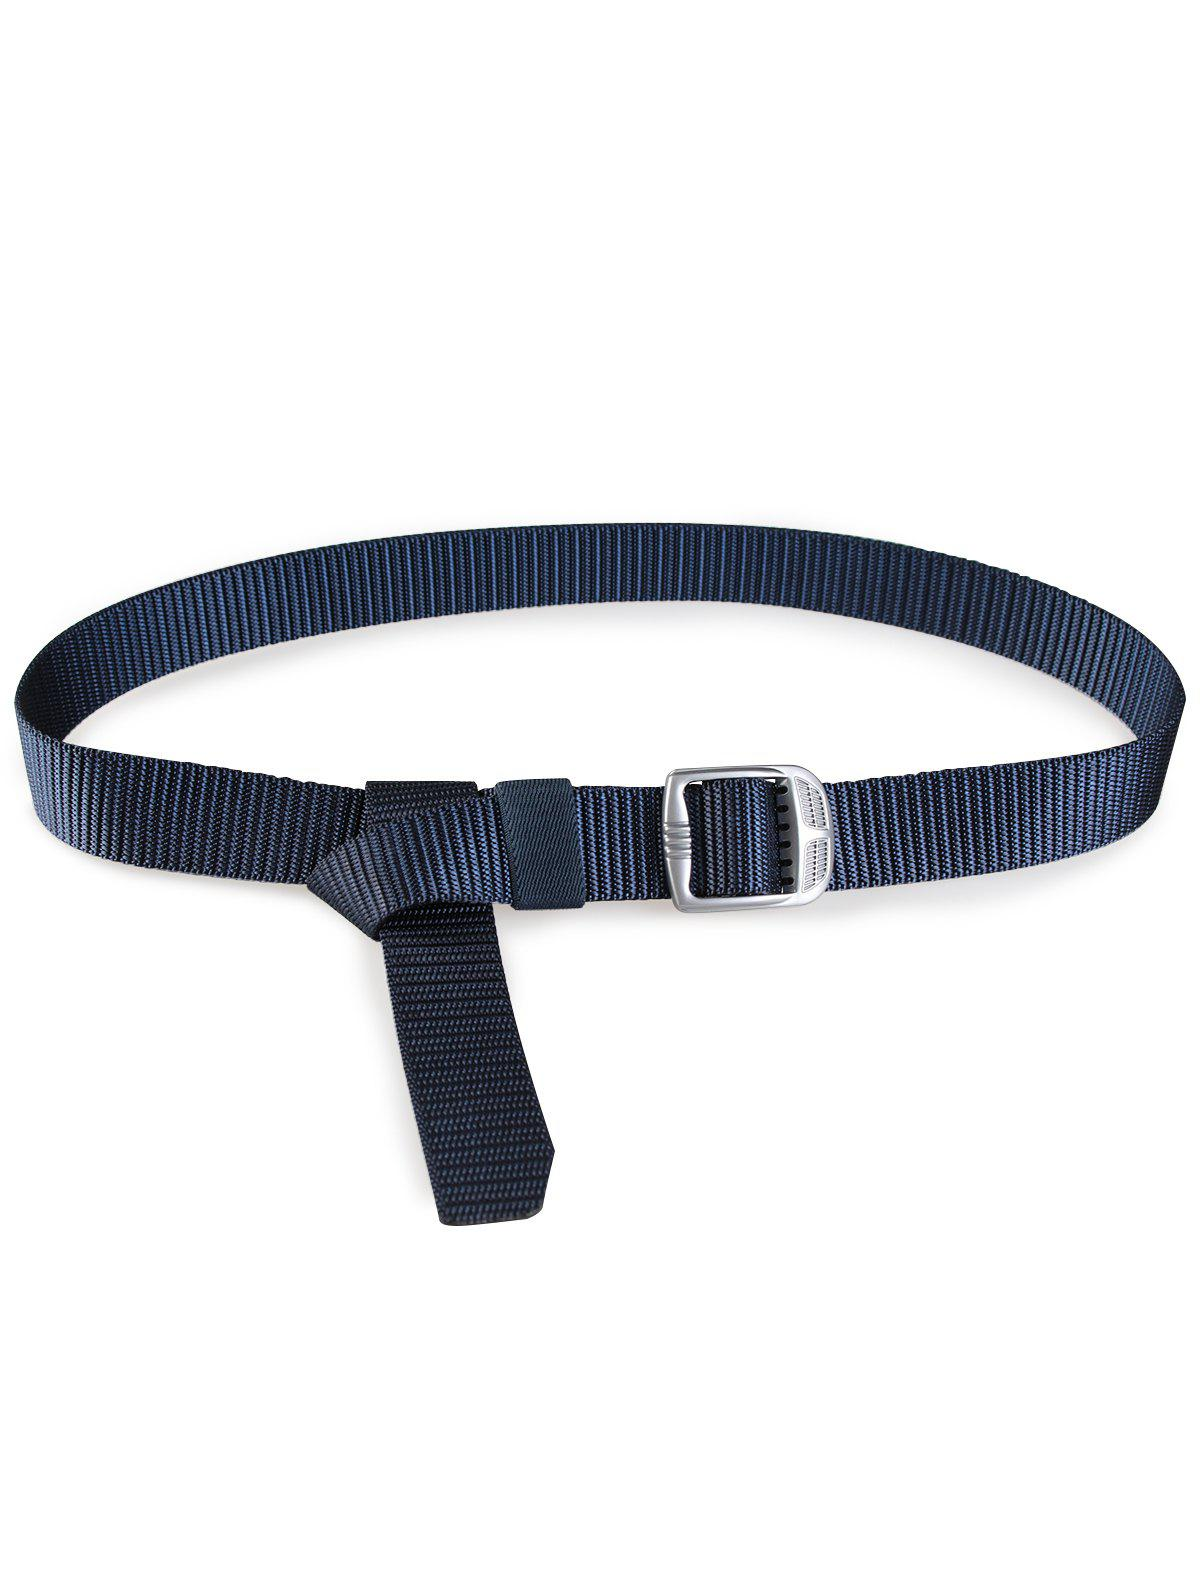 Men's Adjustable Military Canvas Waist Belt - CERULEAN